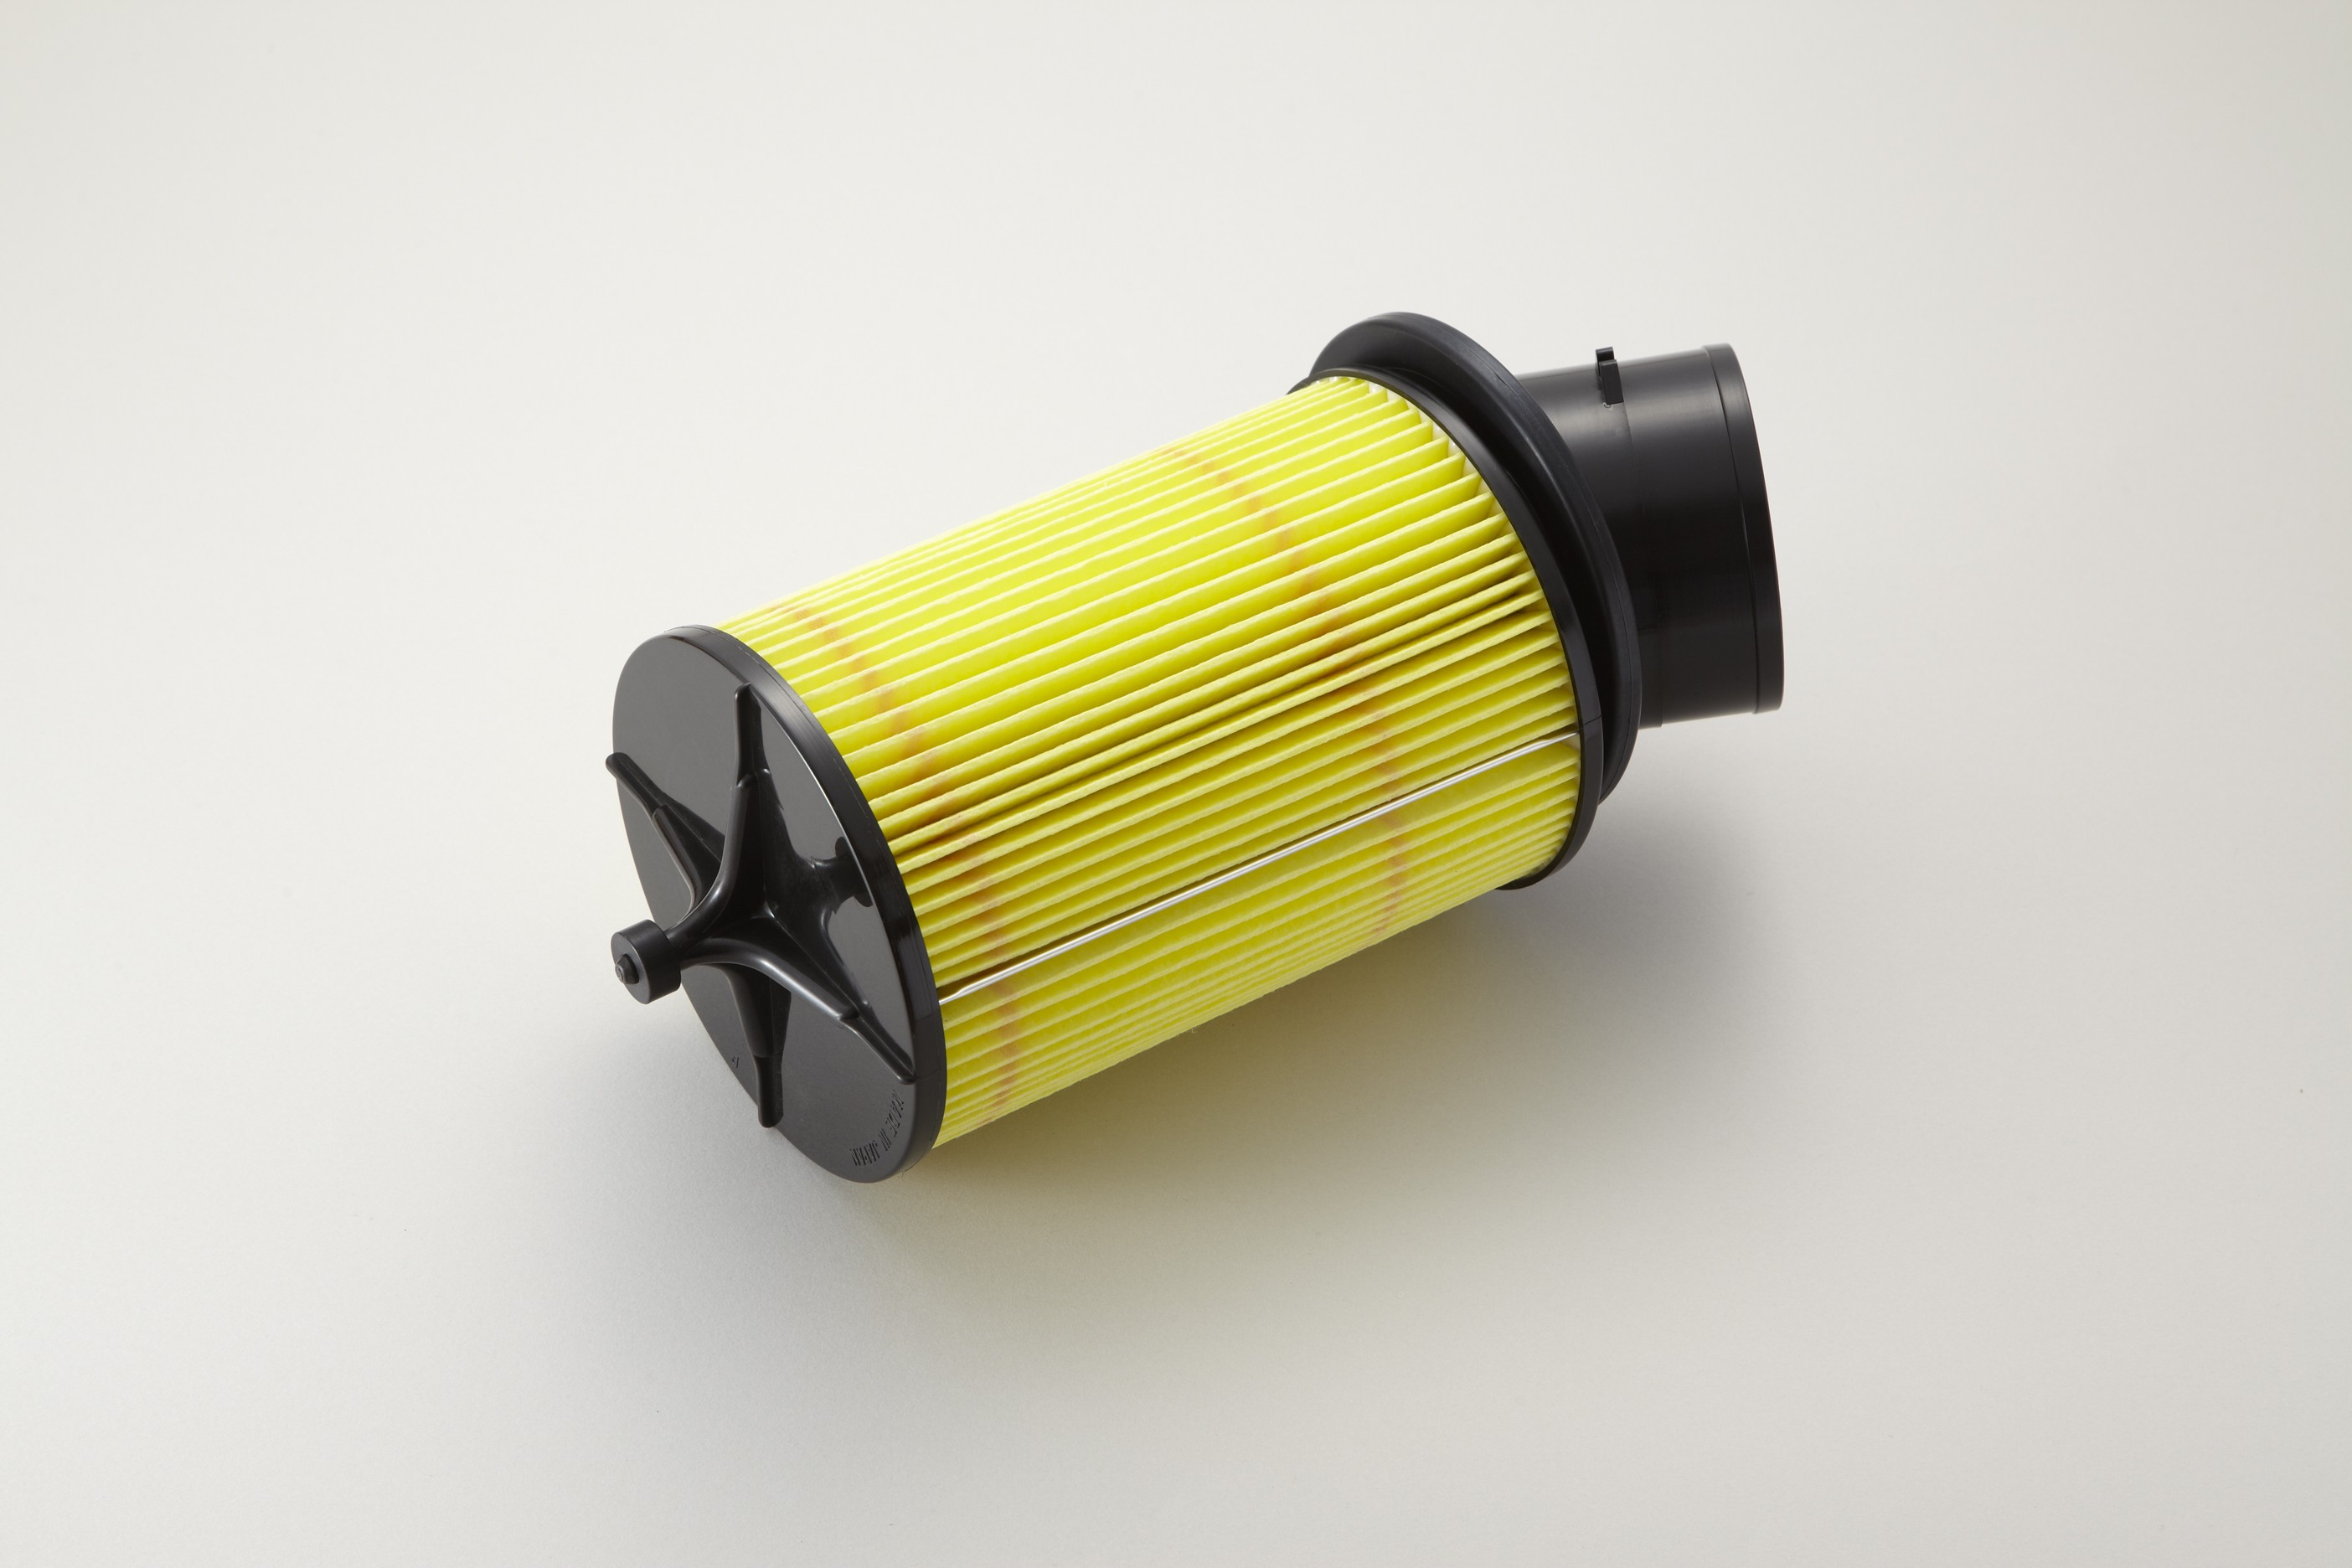 SPOON SPORTS HIGH FLOW AIR FILTER HONDA INTEGRA DC2 TYPE R 96-00